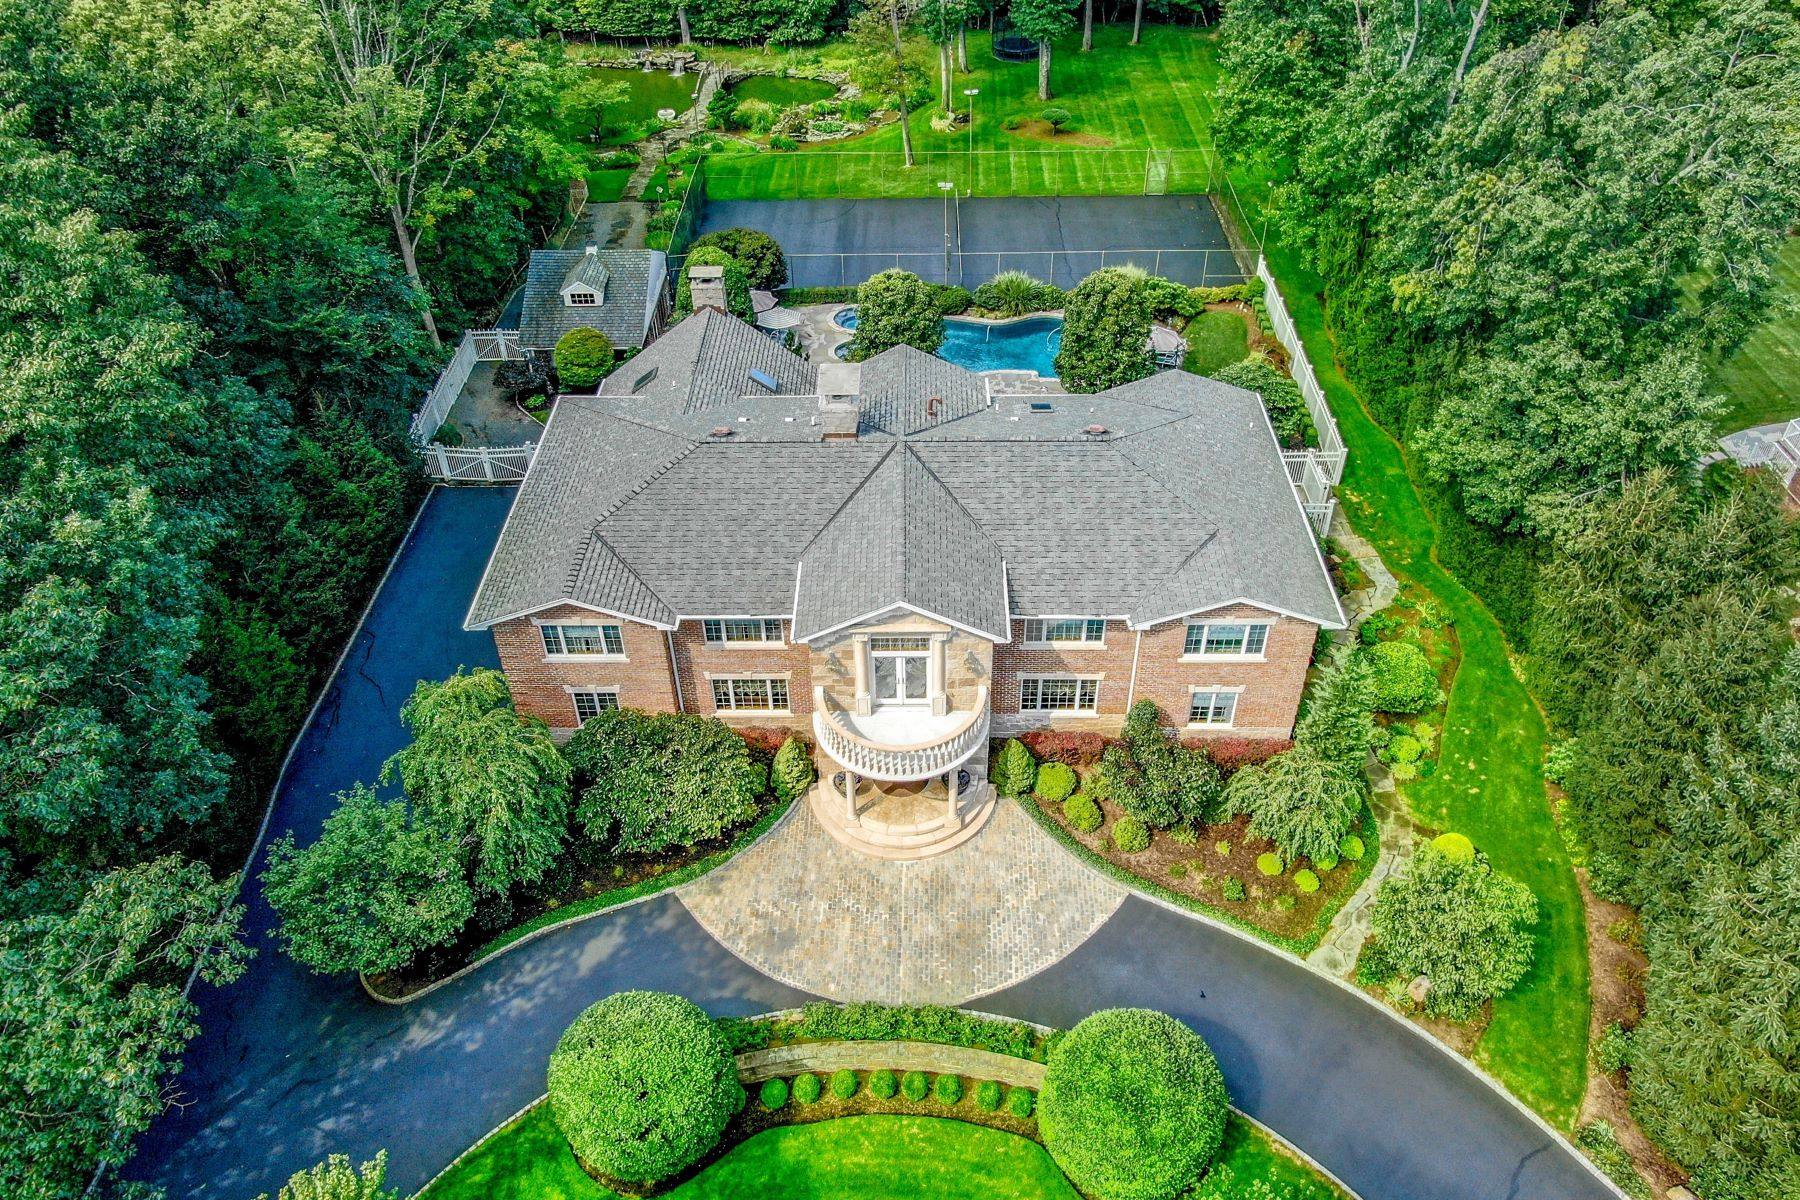 Single Family Homes for Sale at World Class Luxury Estate 116 Oak Dr. Upper Saddle River, New Jersey 07458 United States